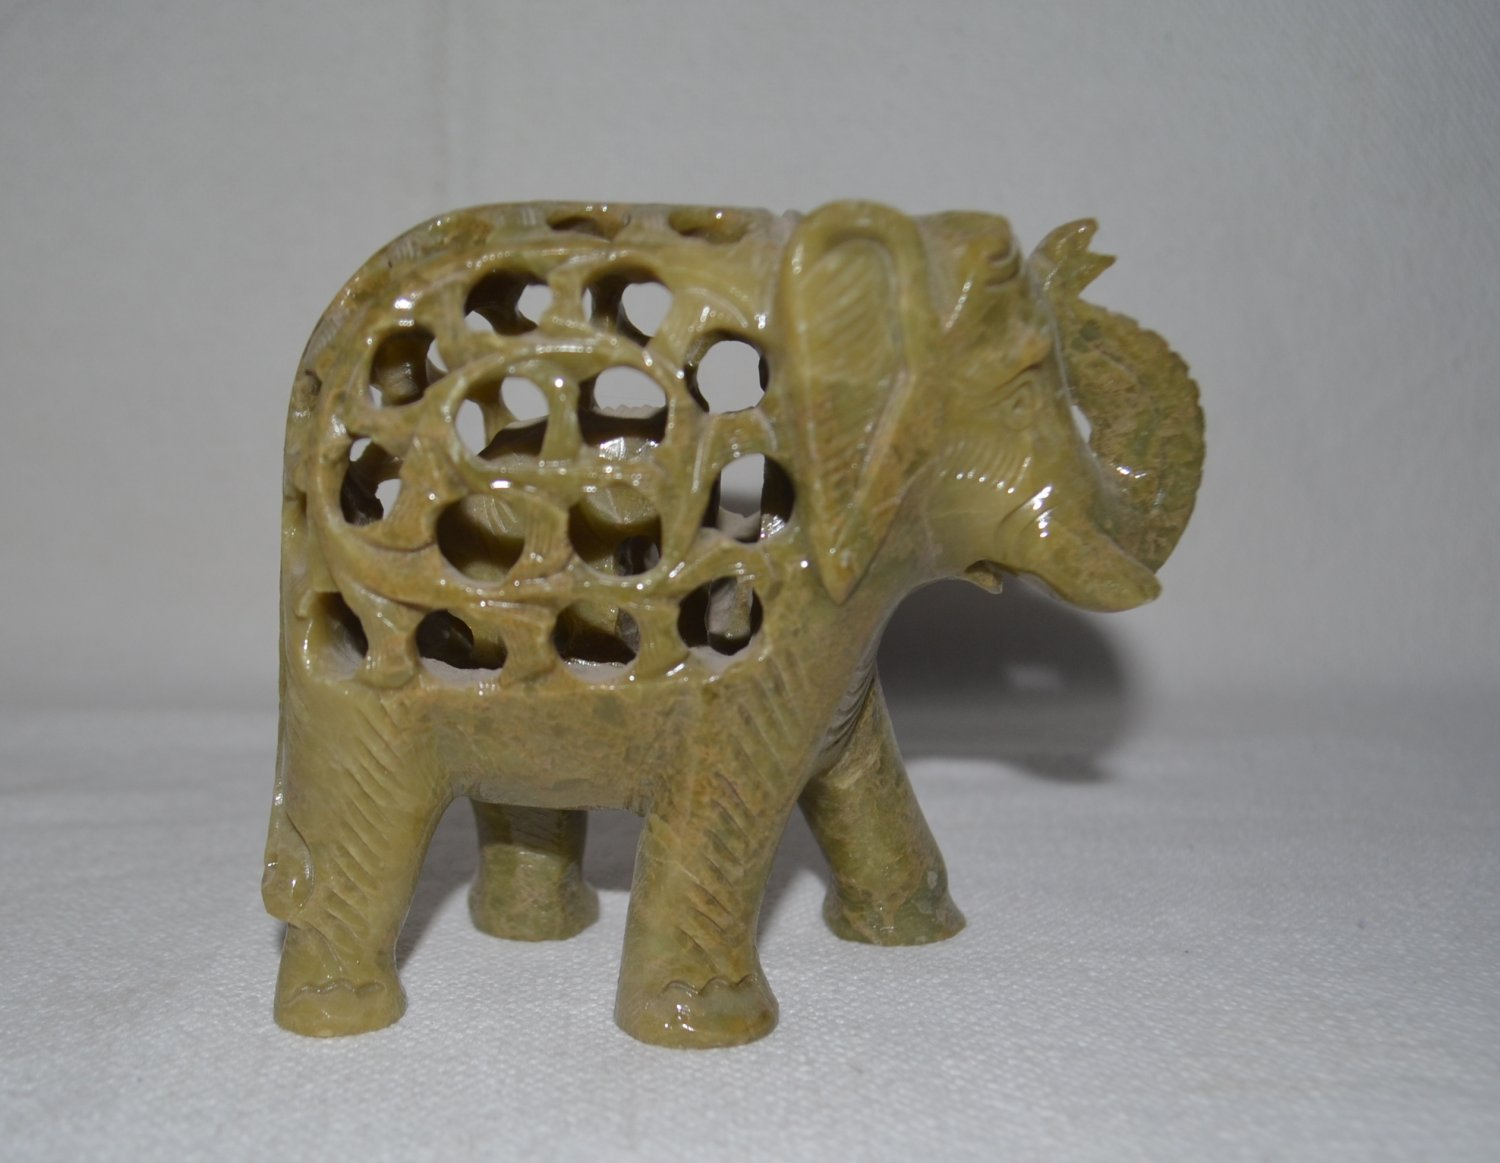 Decorative Solid Marble Elephant Pair handicraft decorative for gifts.